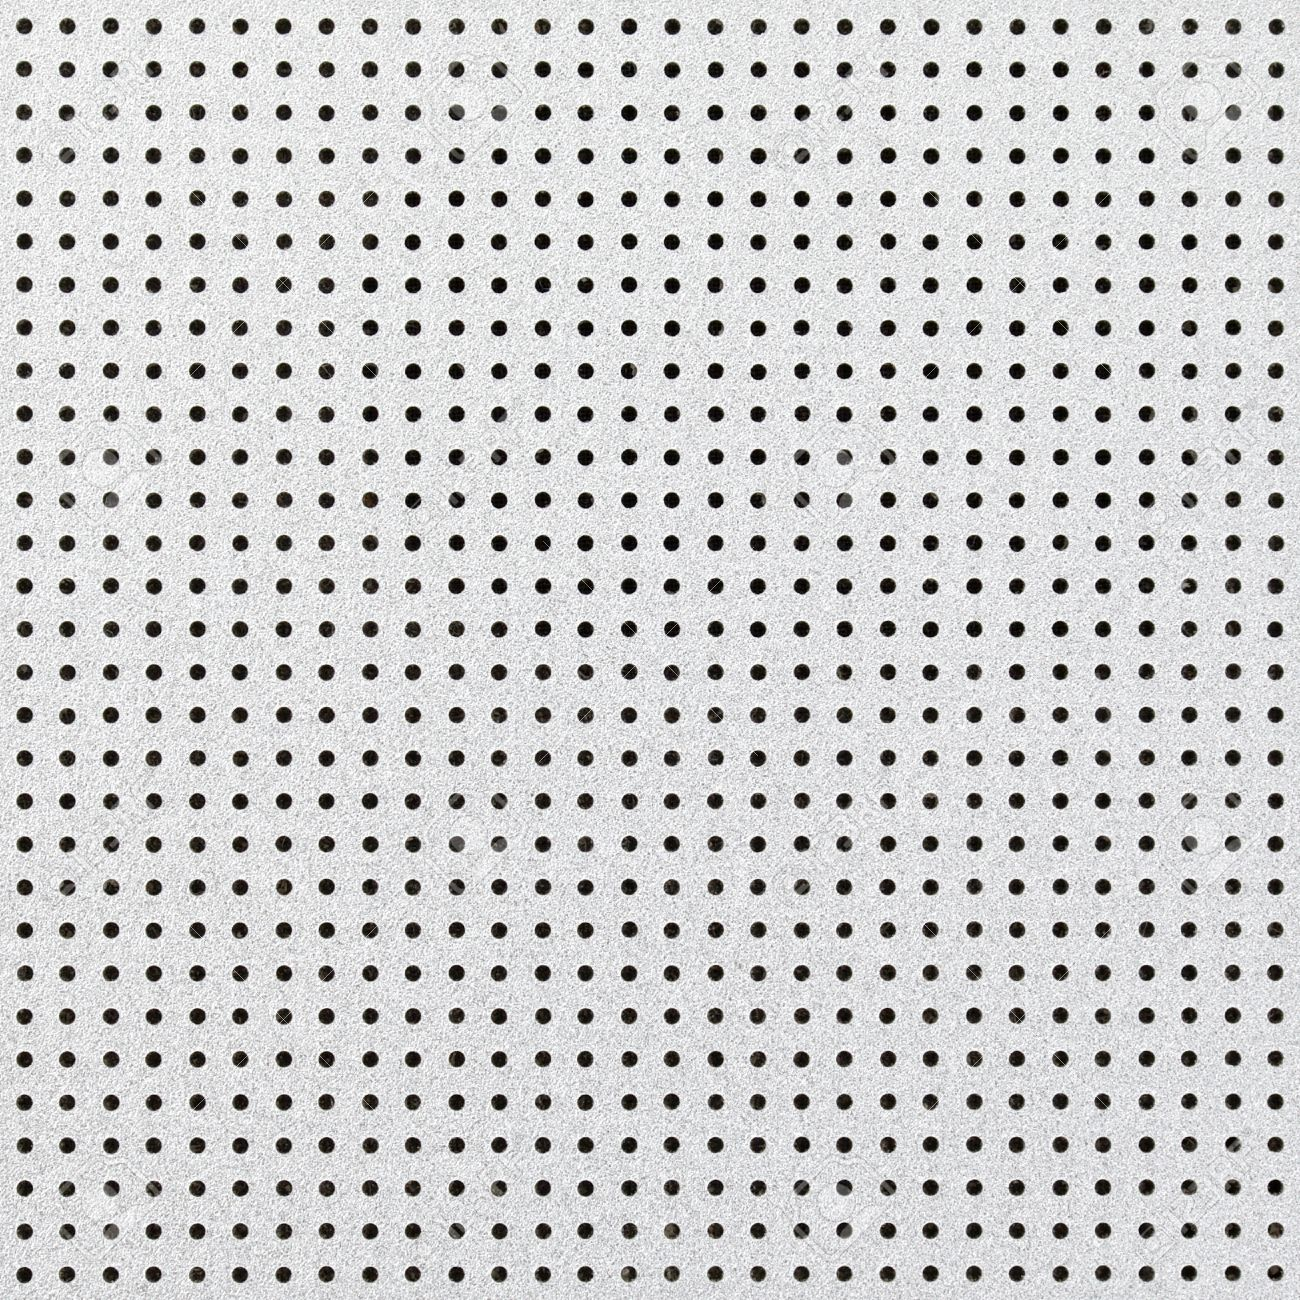 Close Up Shot Of Aluminium Holed Or Perforated Grid Texture ...